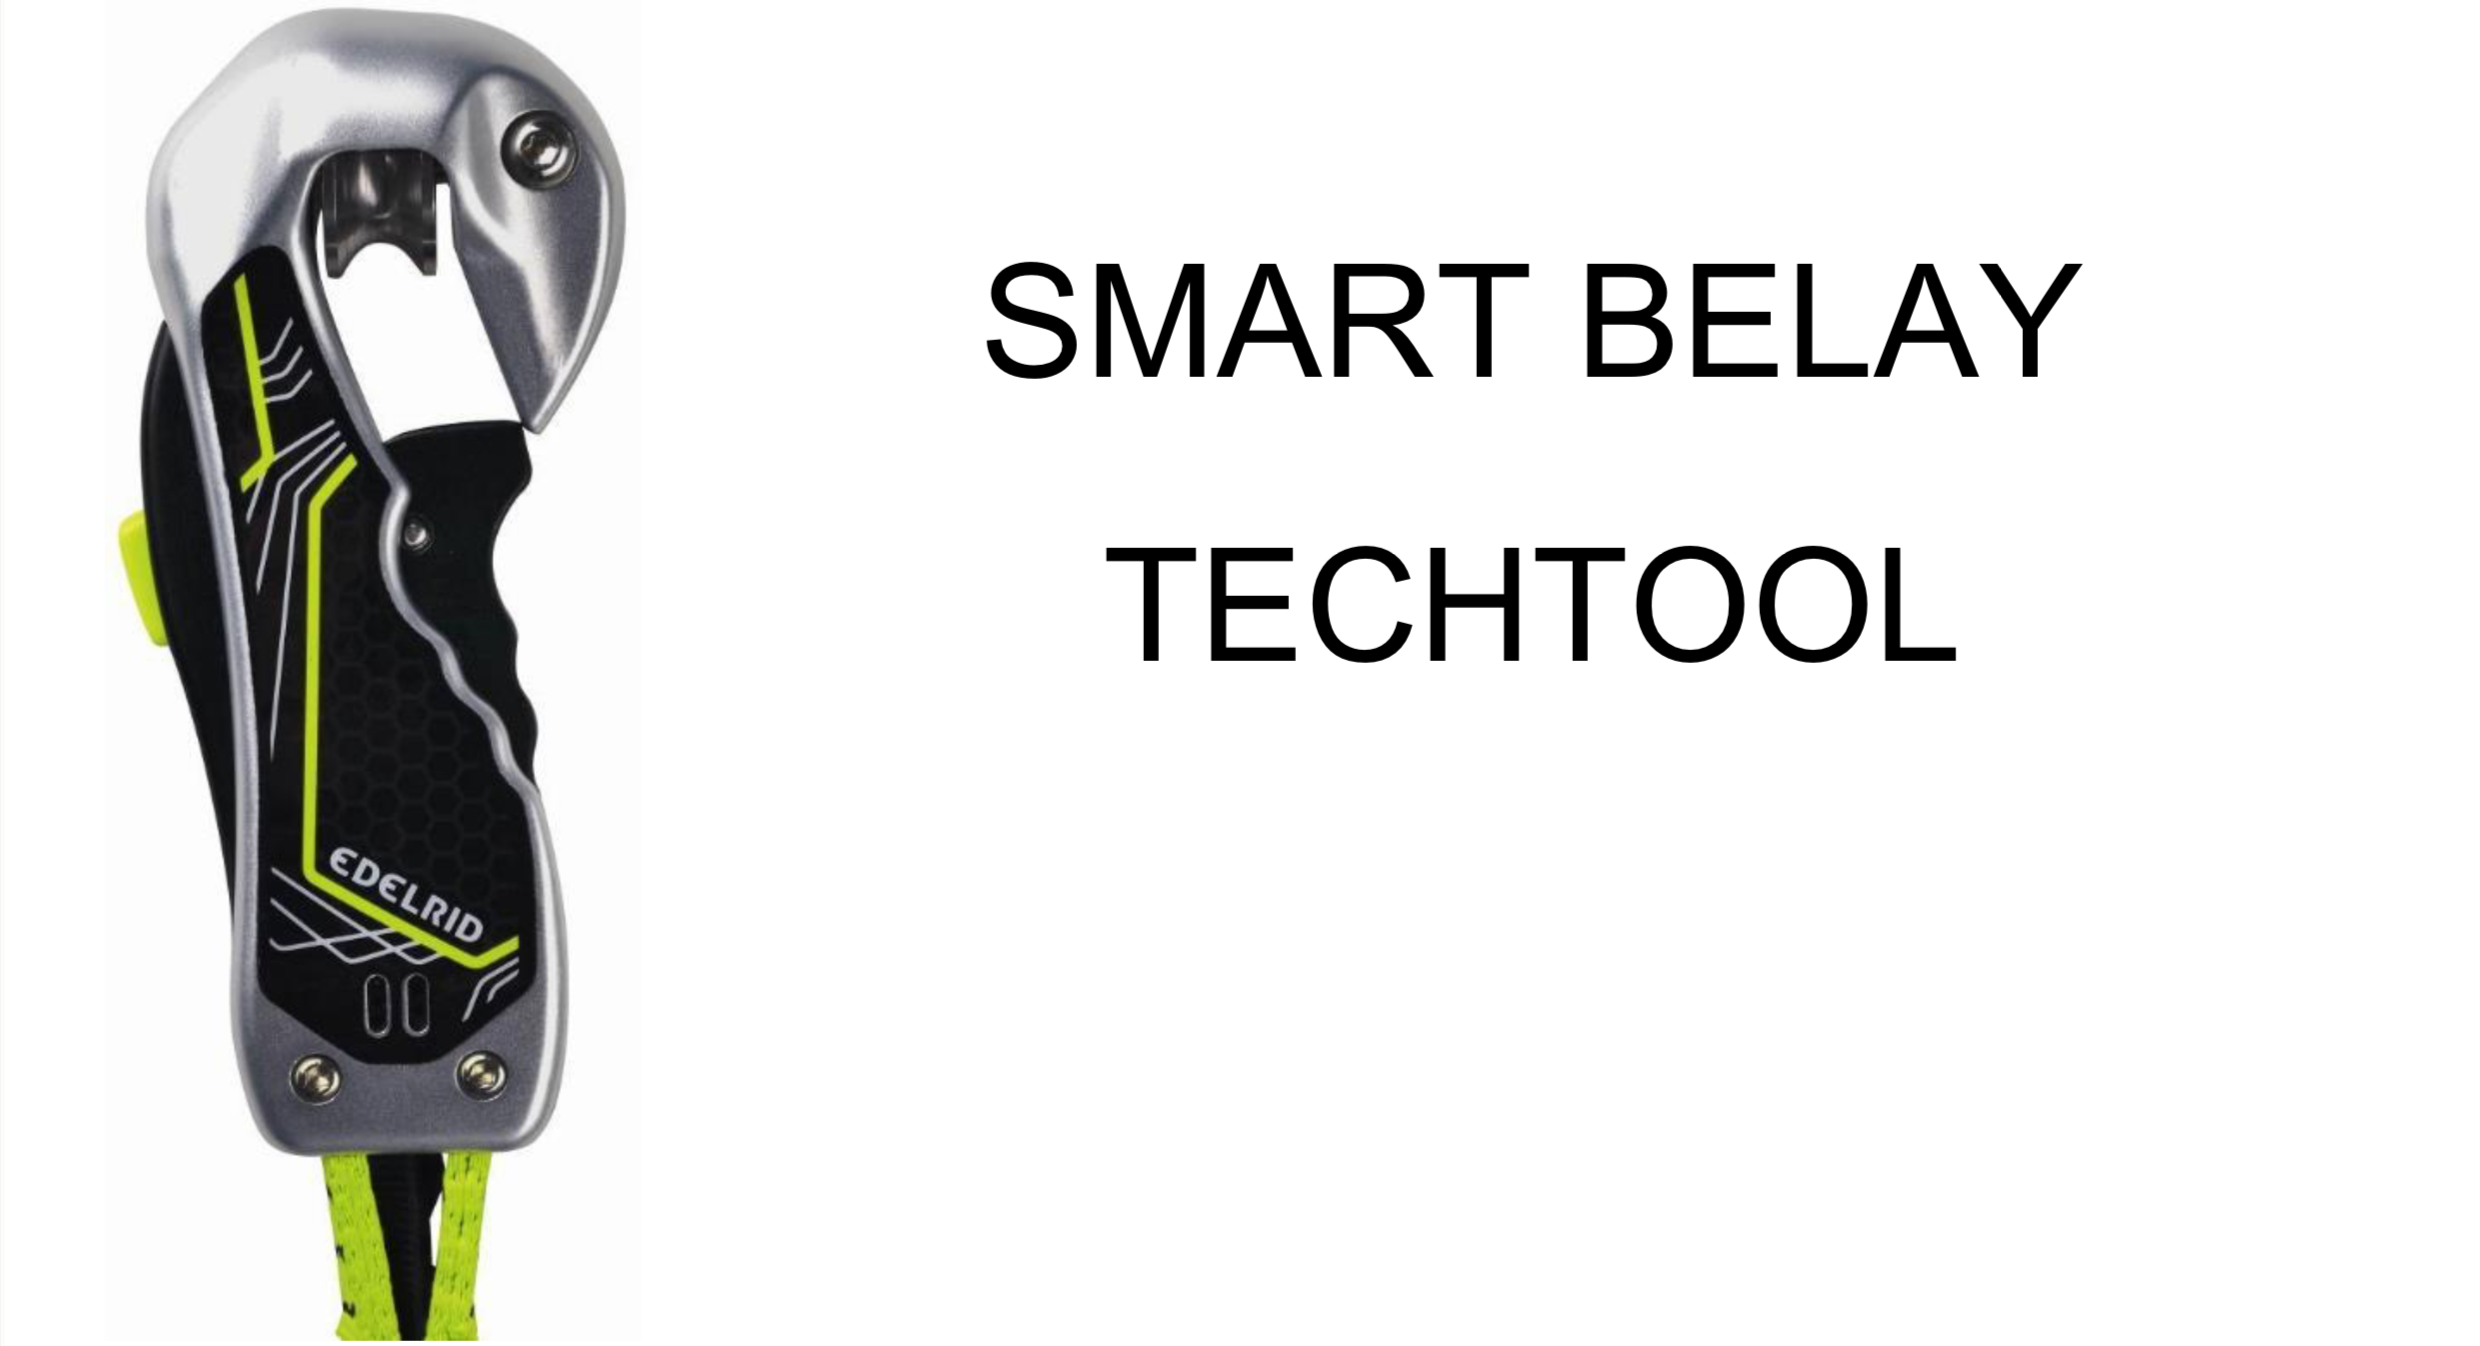 SMART BELAY TECHTOOL.png